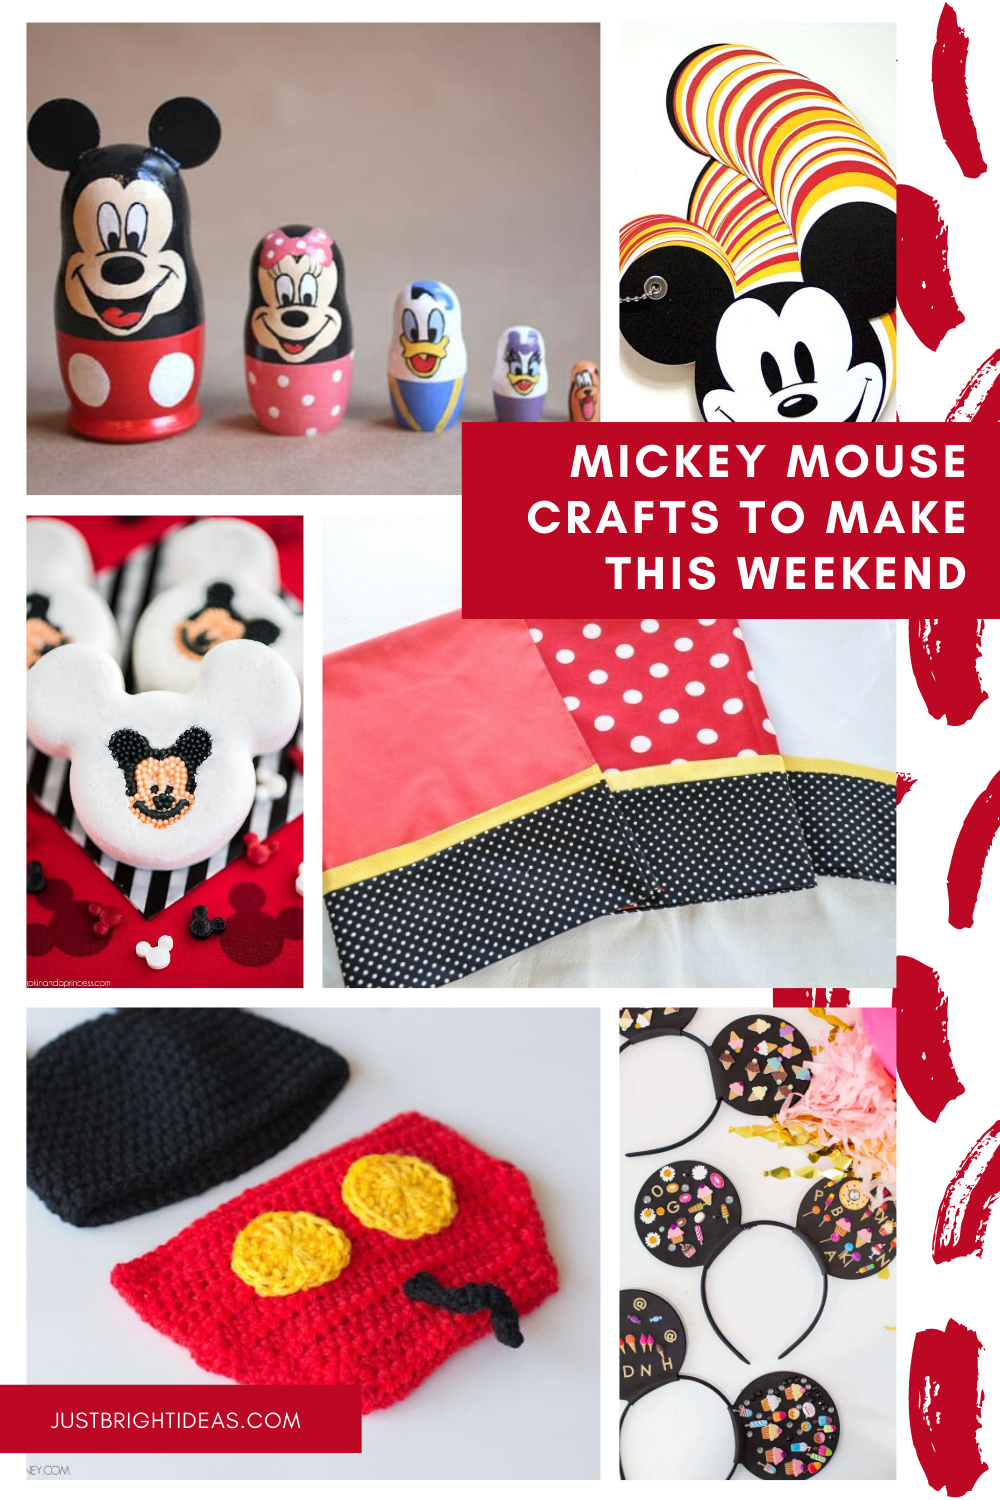 10 Creative Mickey Mouse Craft Ideas For All You Disney Fans In 2020 Mickey Mouse Crafts Mouse Crafts Disney Crafts For Adults